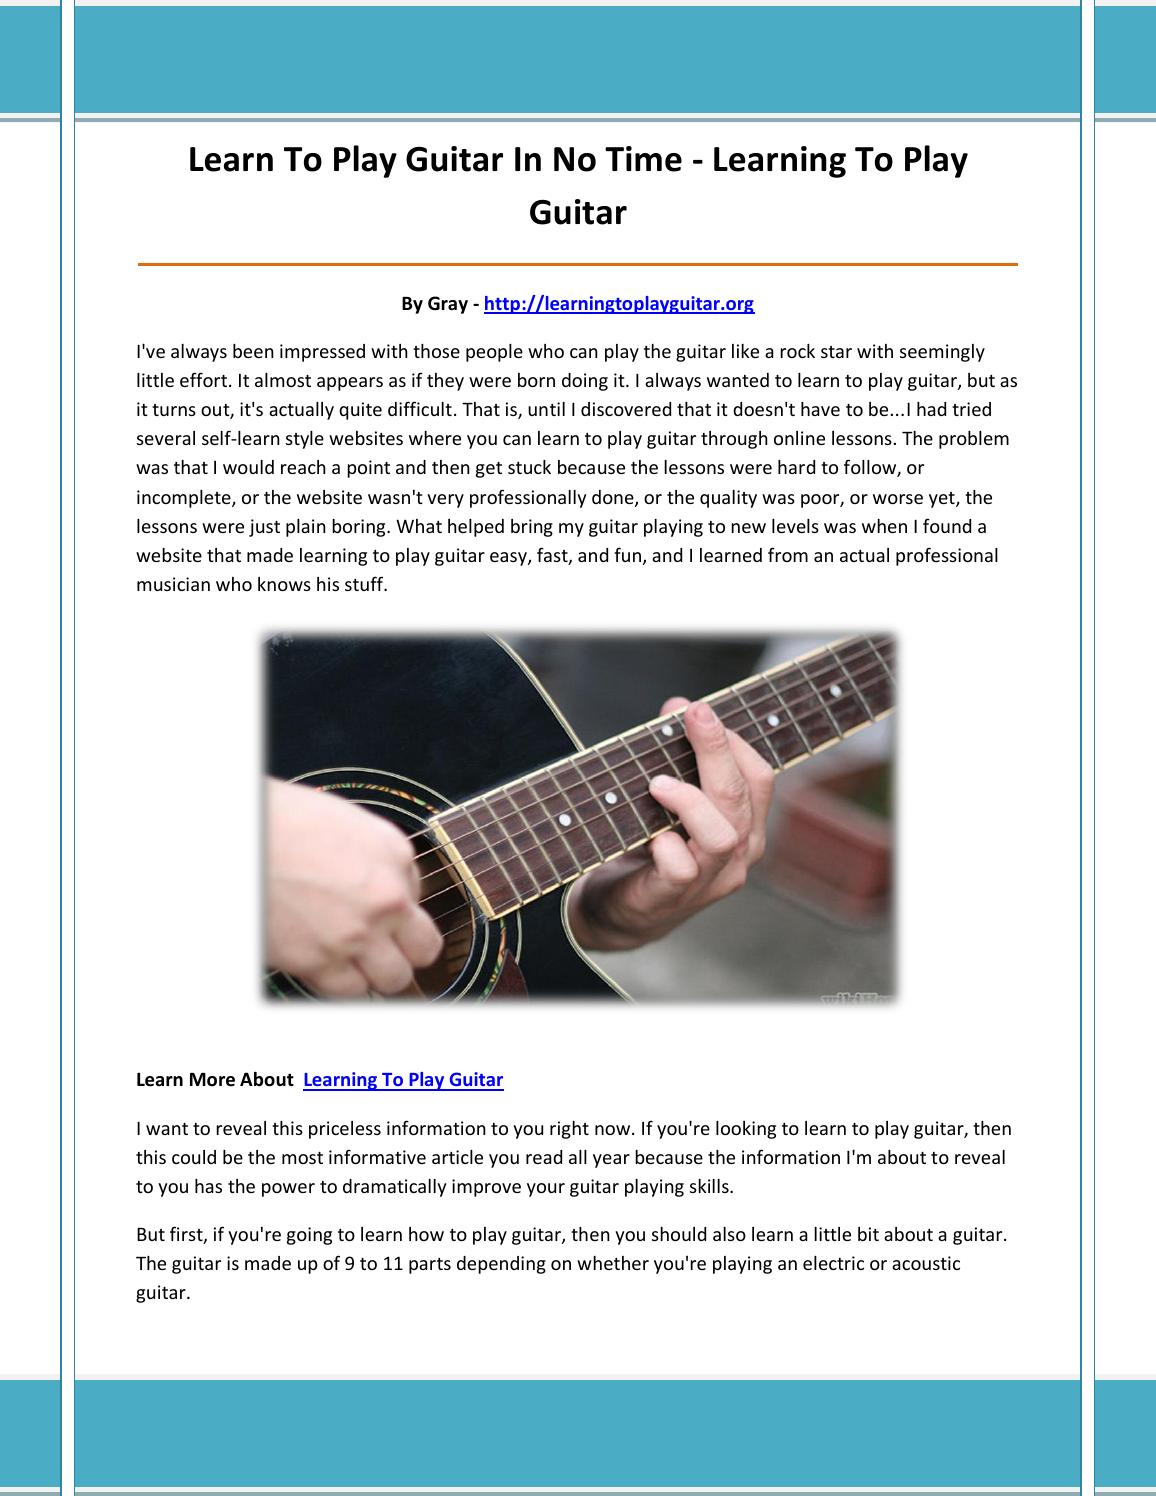 Learning To Play Guitar By Nmjnbv Issuu